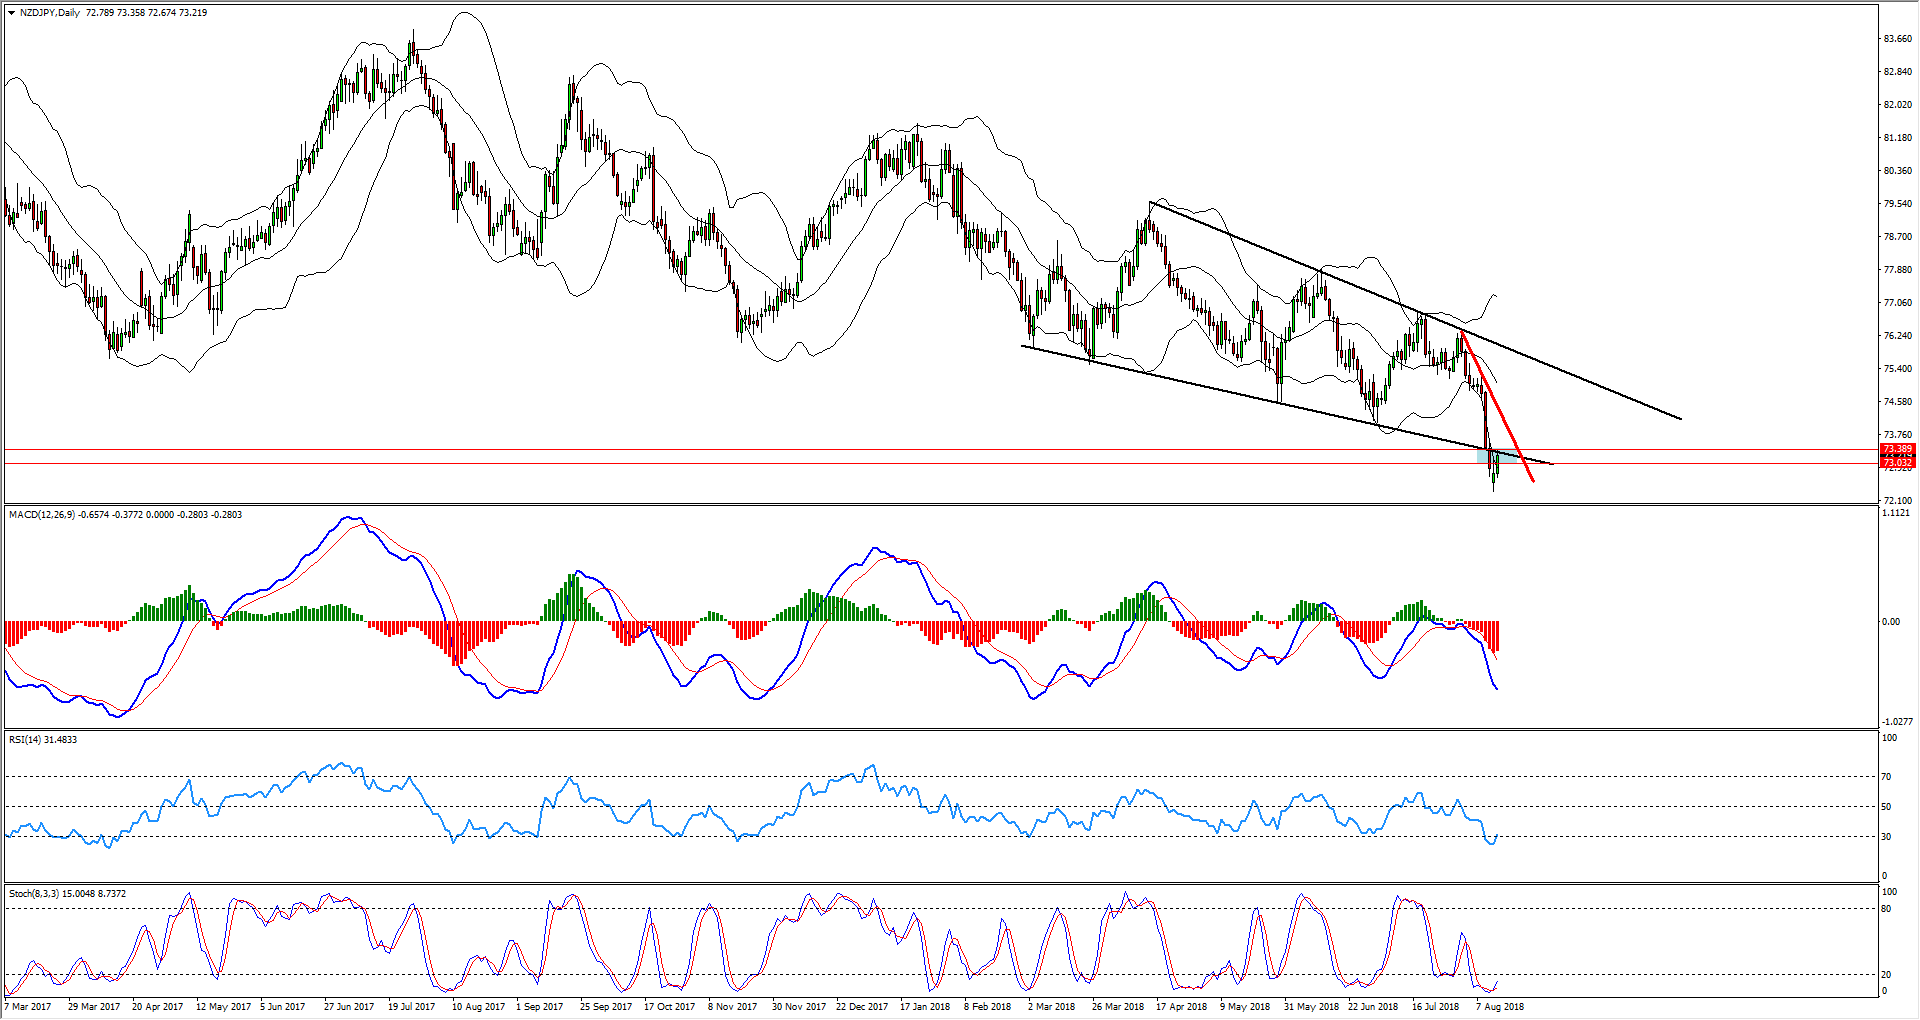 NZDJPY Daily Pattern Breakout Provides Sell Opportunity